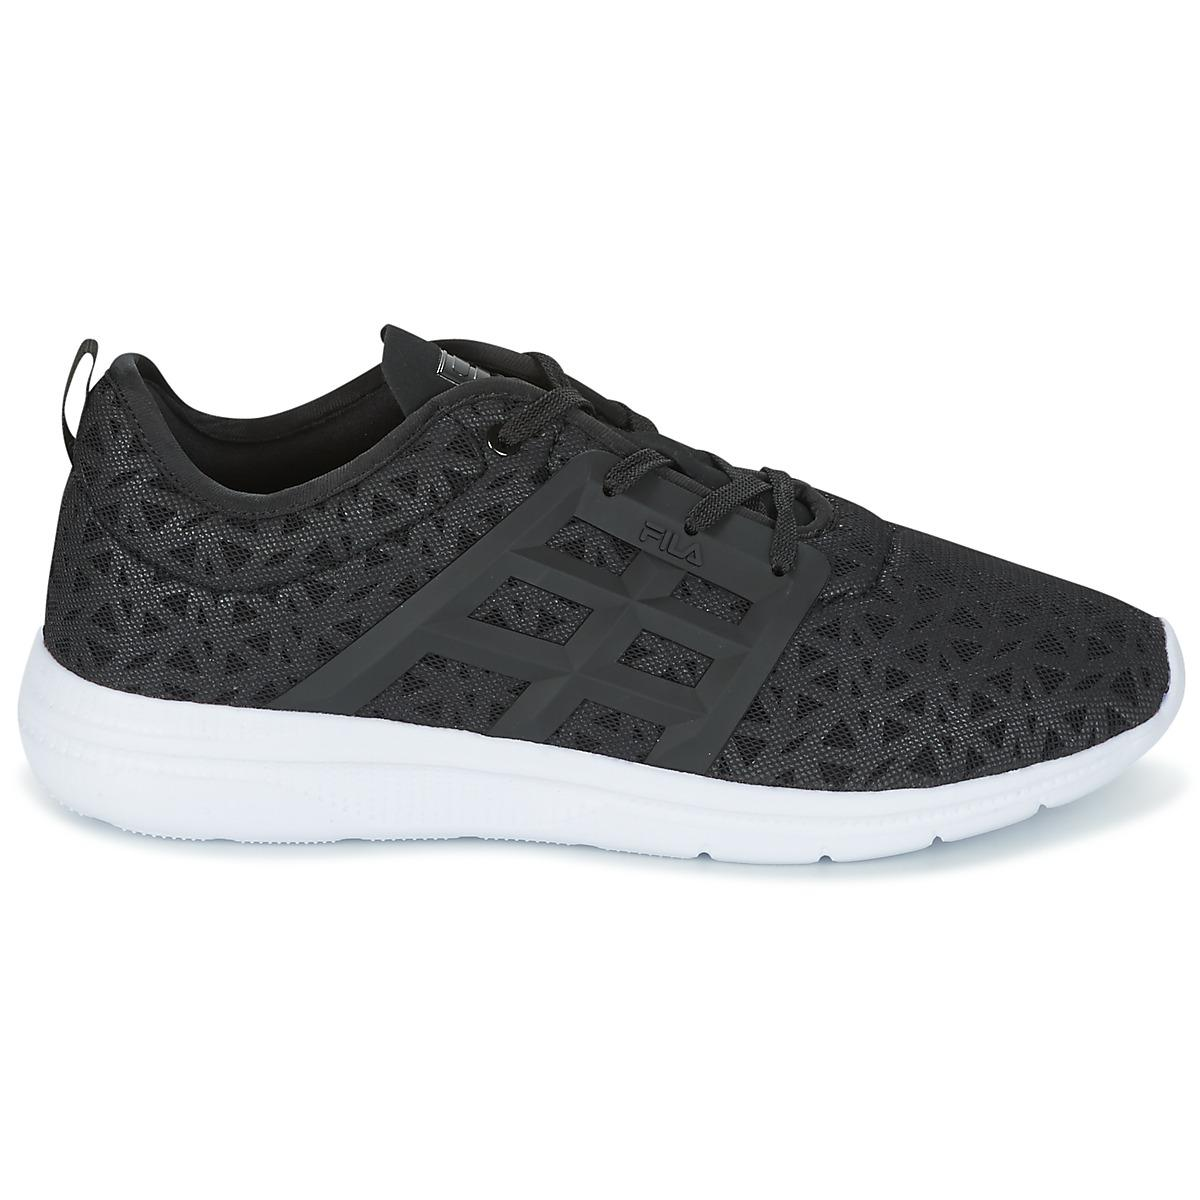 Fila Synthetic Powerbolt 2 Low Shoes (trainers) in Black for Men